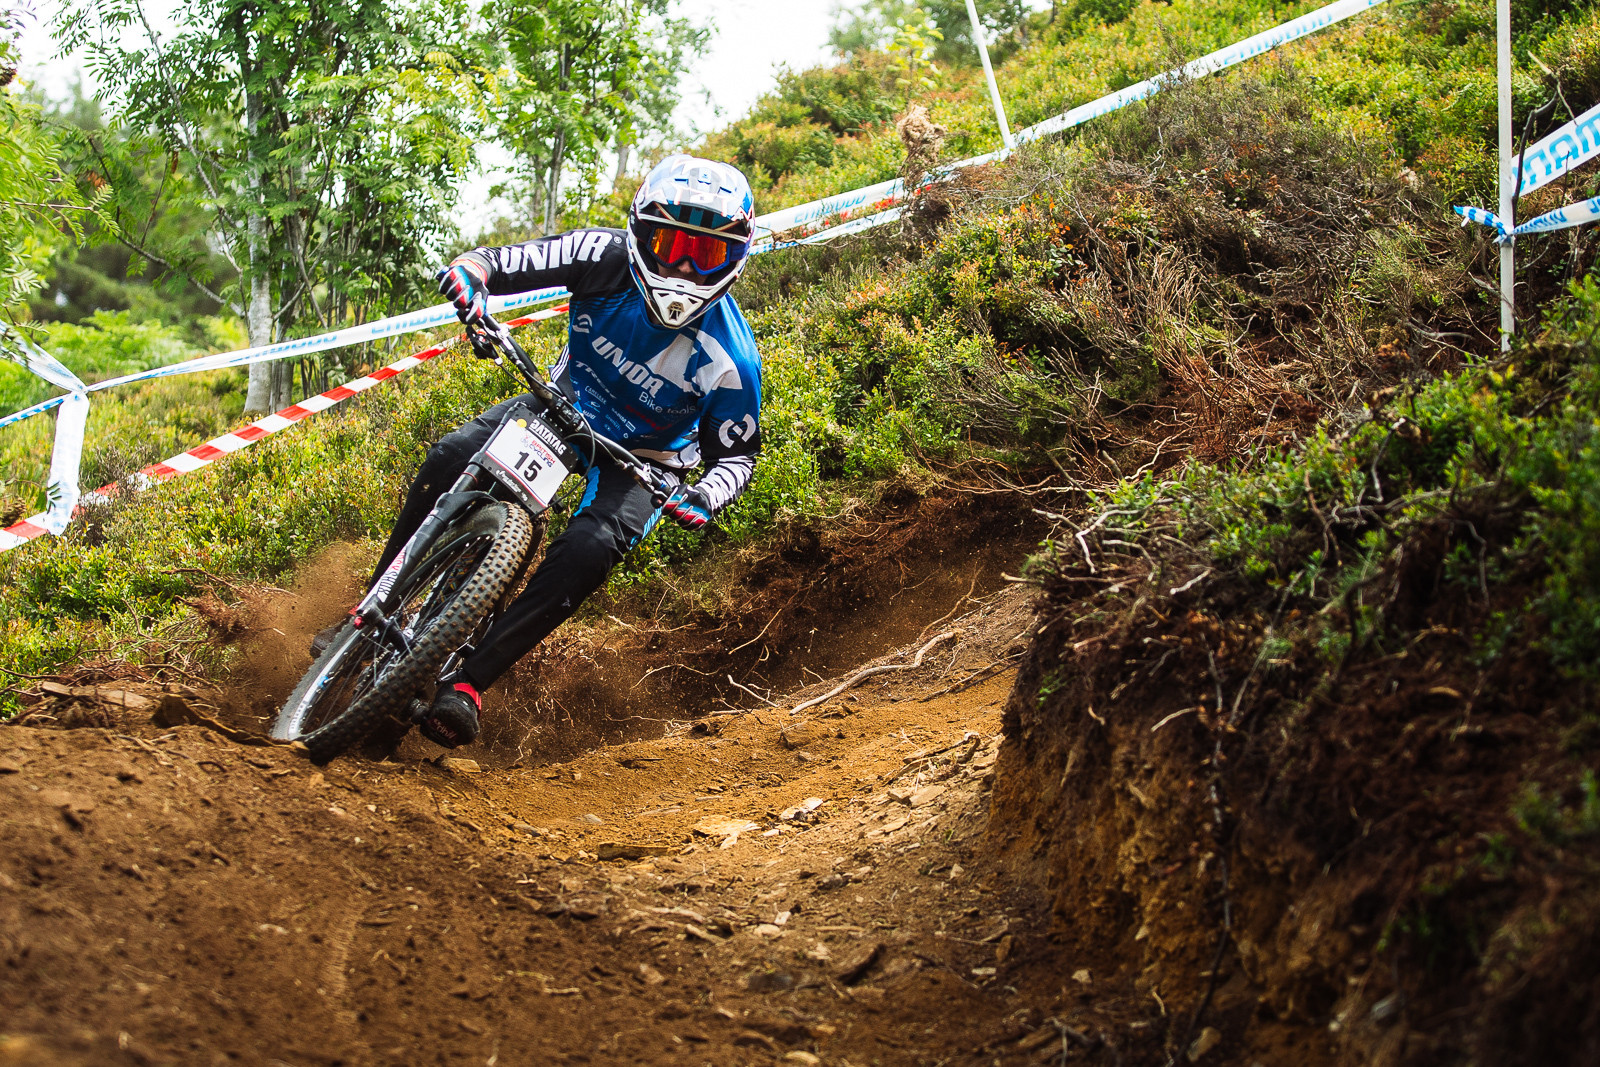 Reece Wilson - 2015 British National Champs Downhill - 2015 British National Champs Downhill Photos - Mountain Biking Pictures - Vital MTB